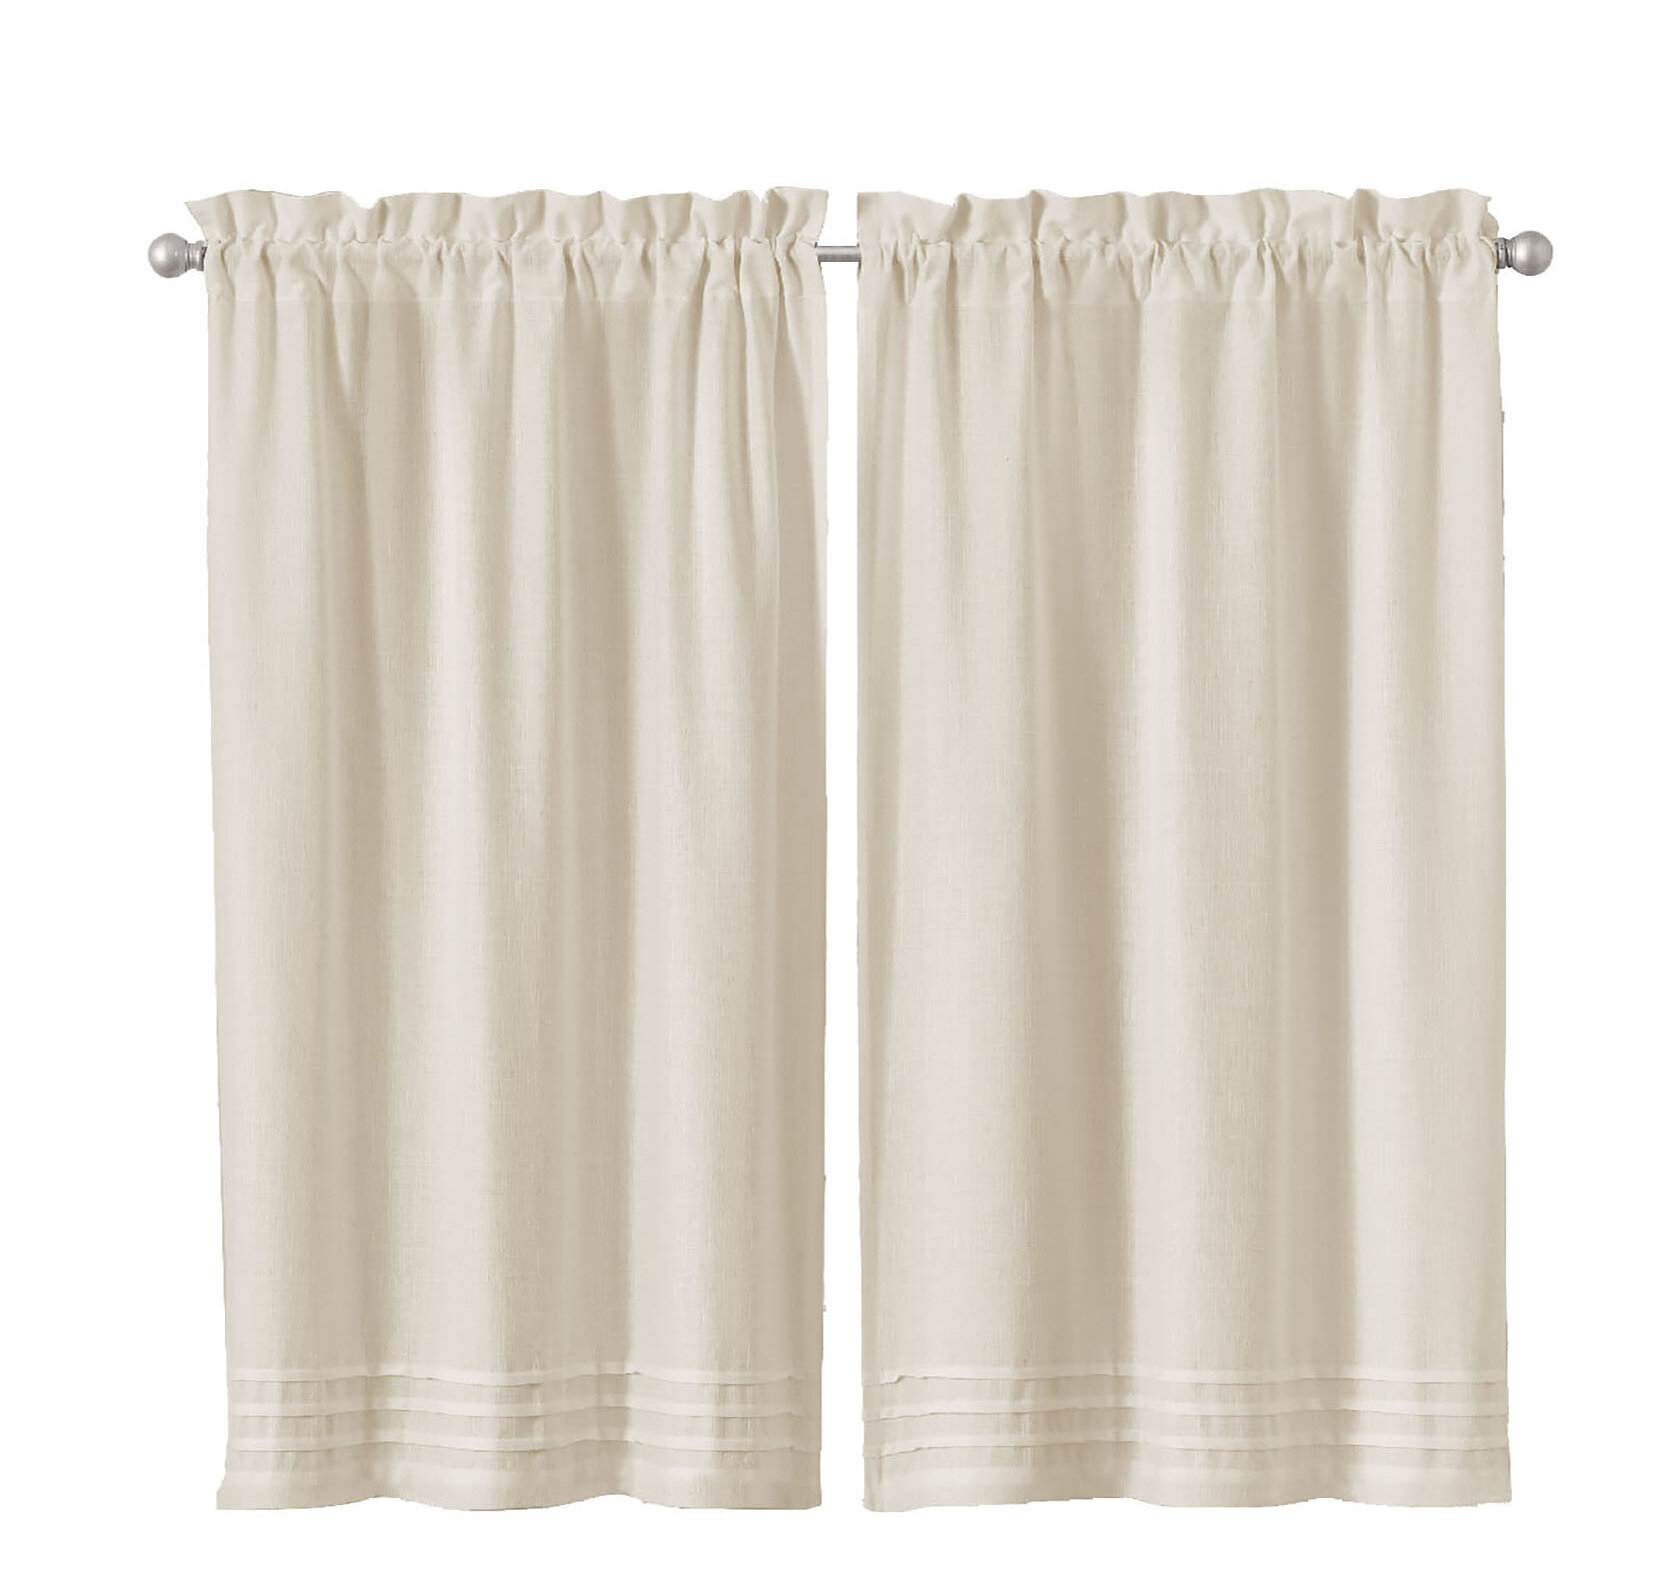 Aon Window Pleated Cafe Curtain Inside Luxury Collection Kitchen Tiers (View 11 of 20)